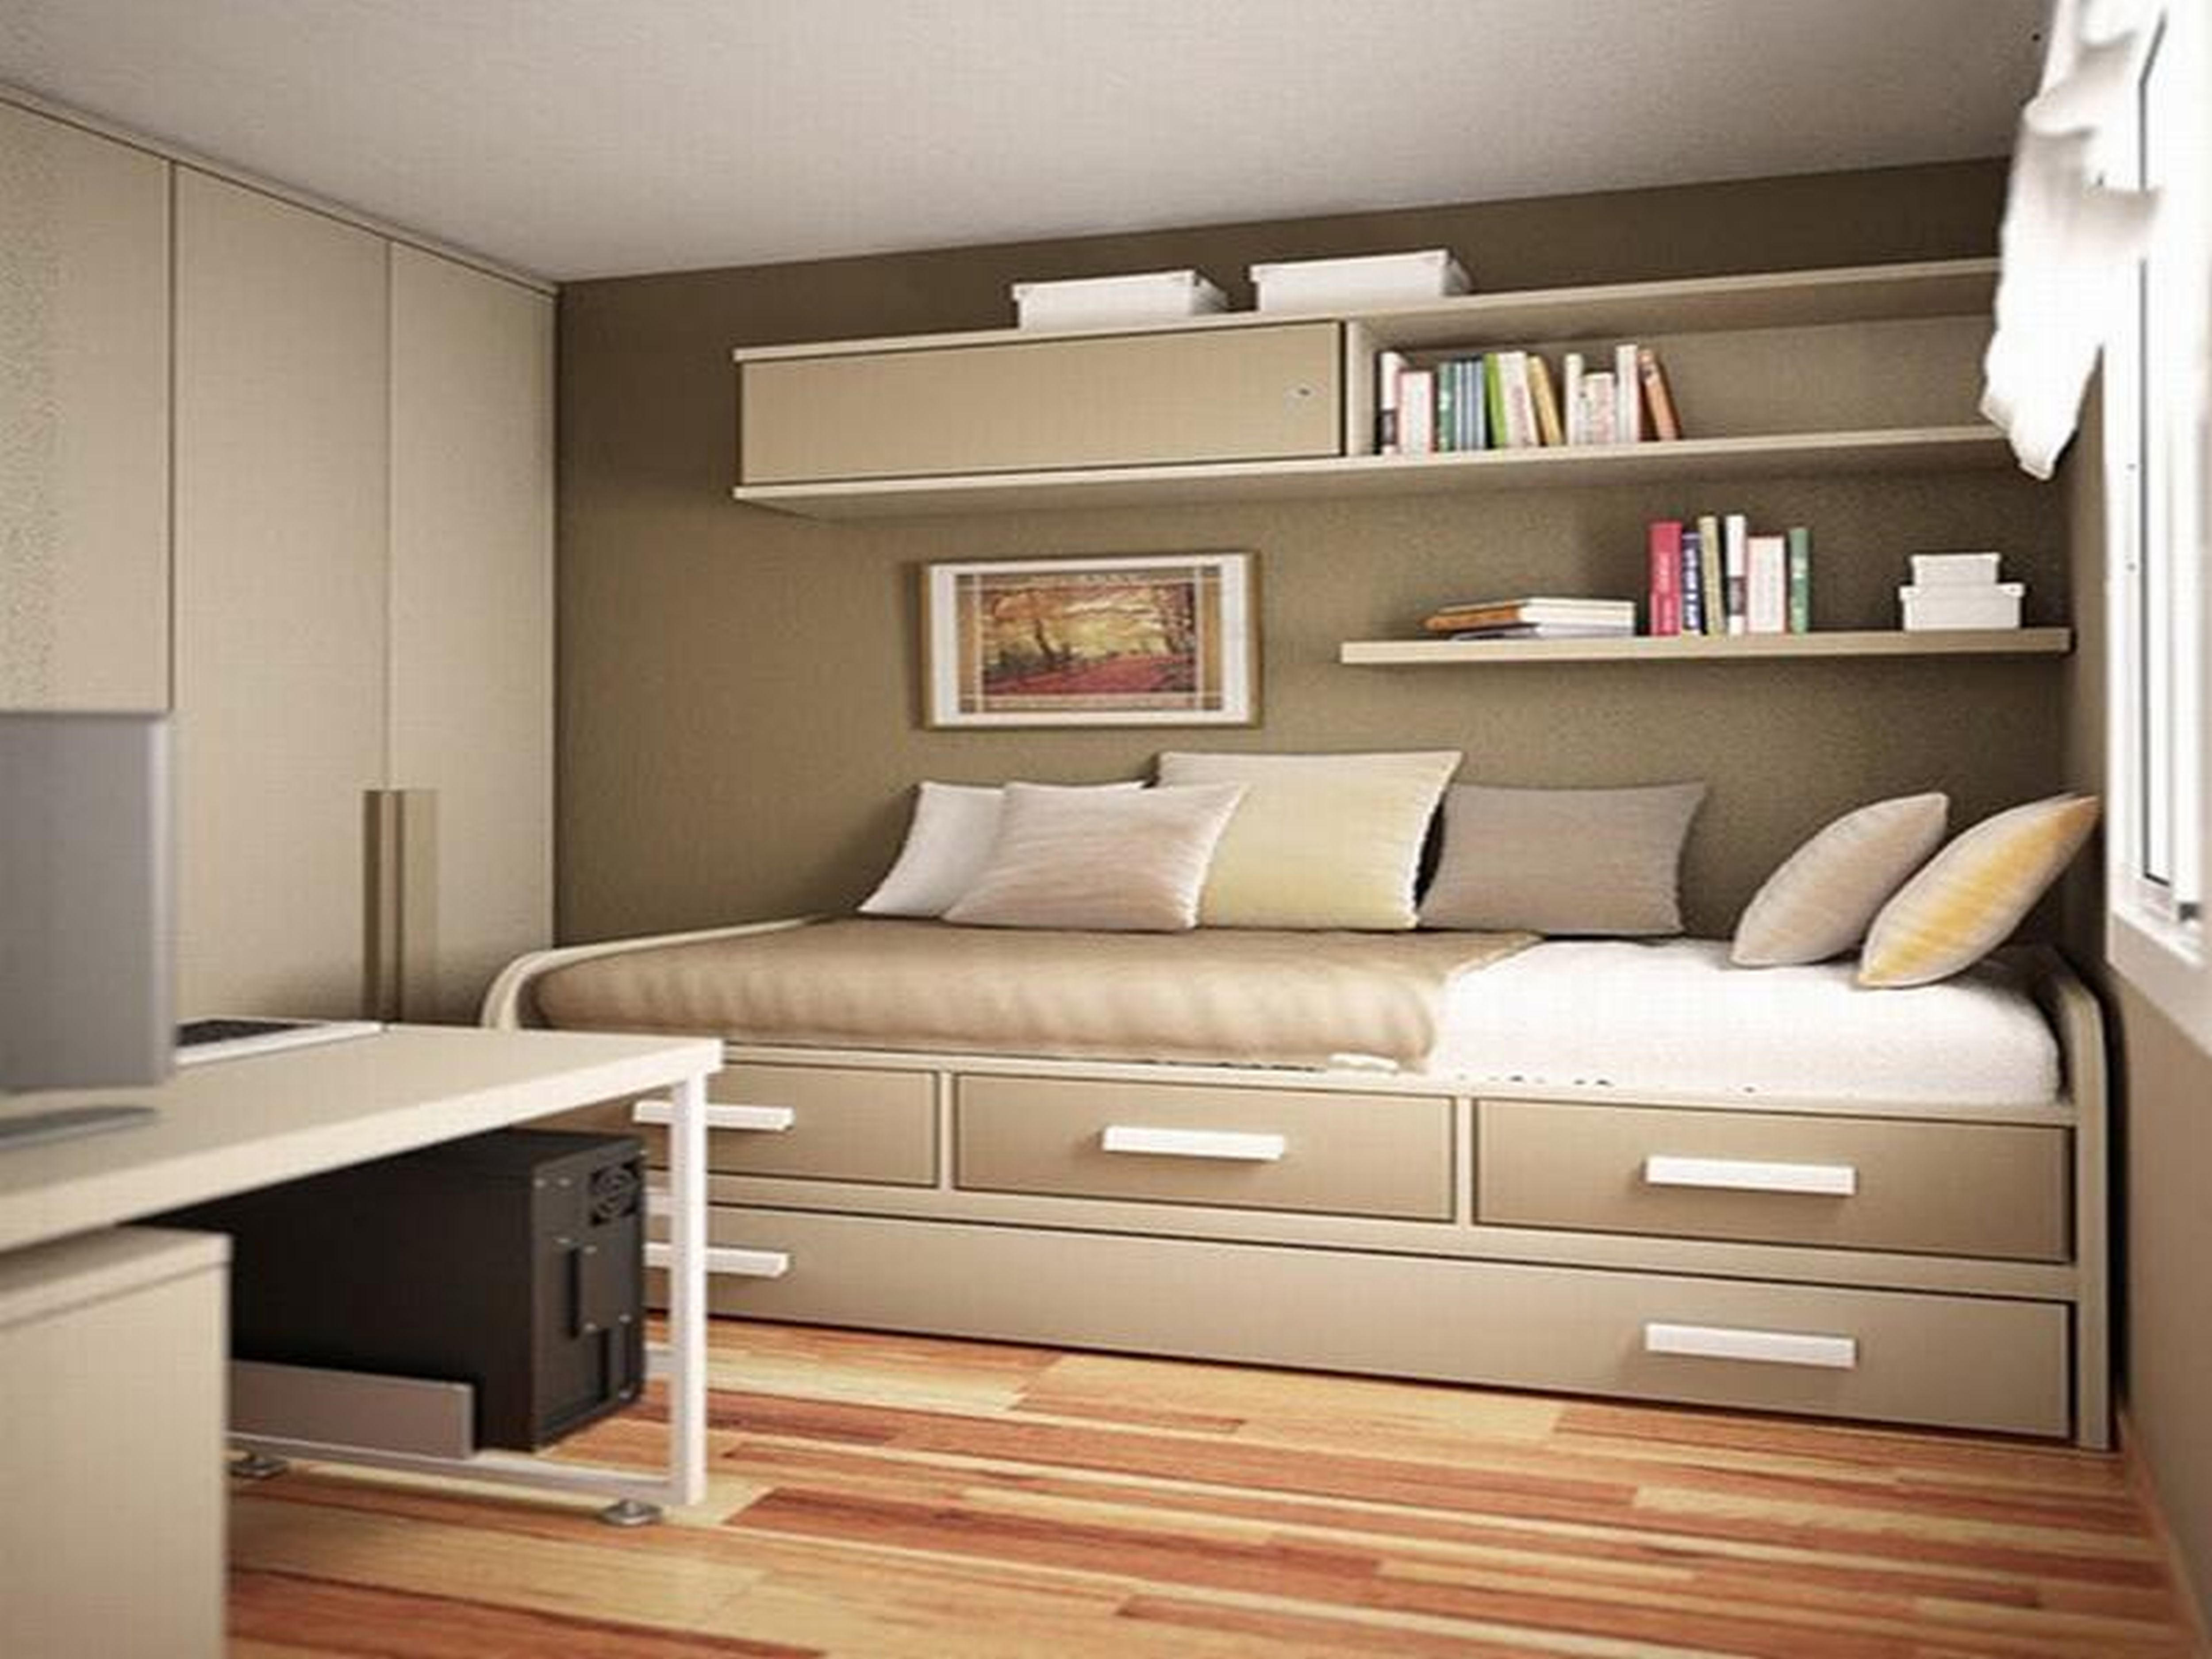 Ideas Decorating Small Bedrooms Photos Gallery